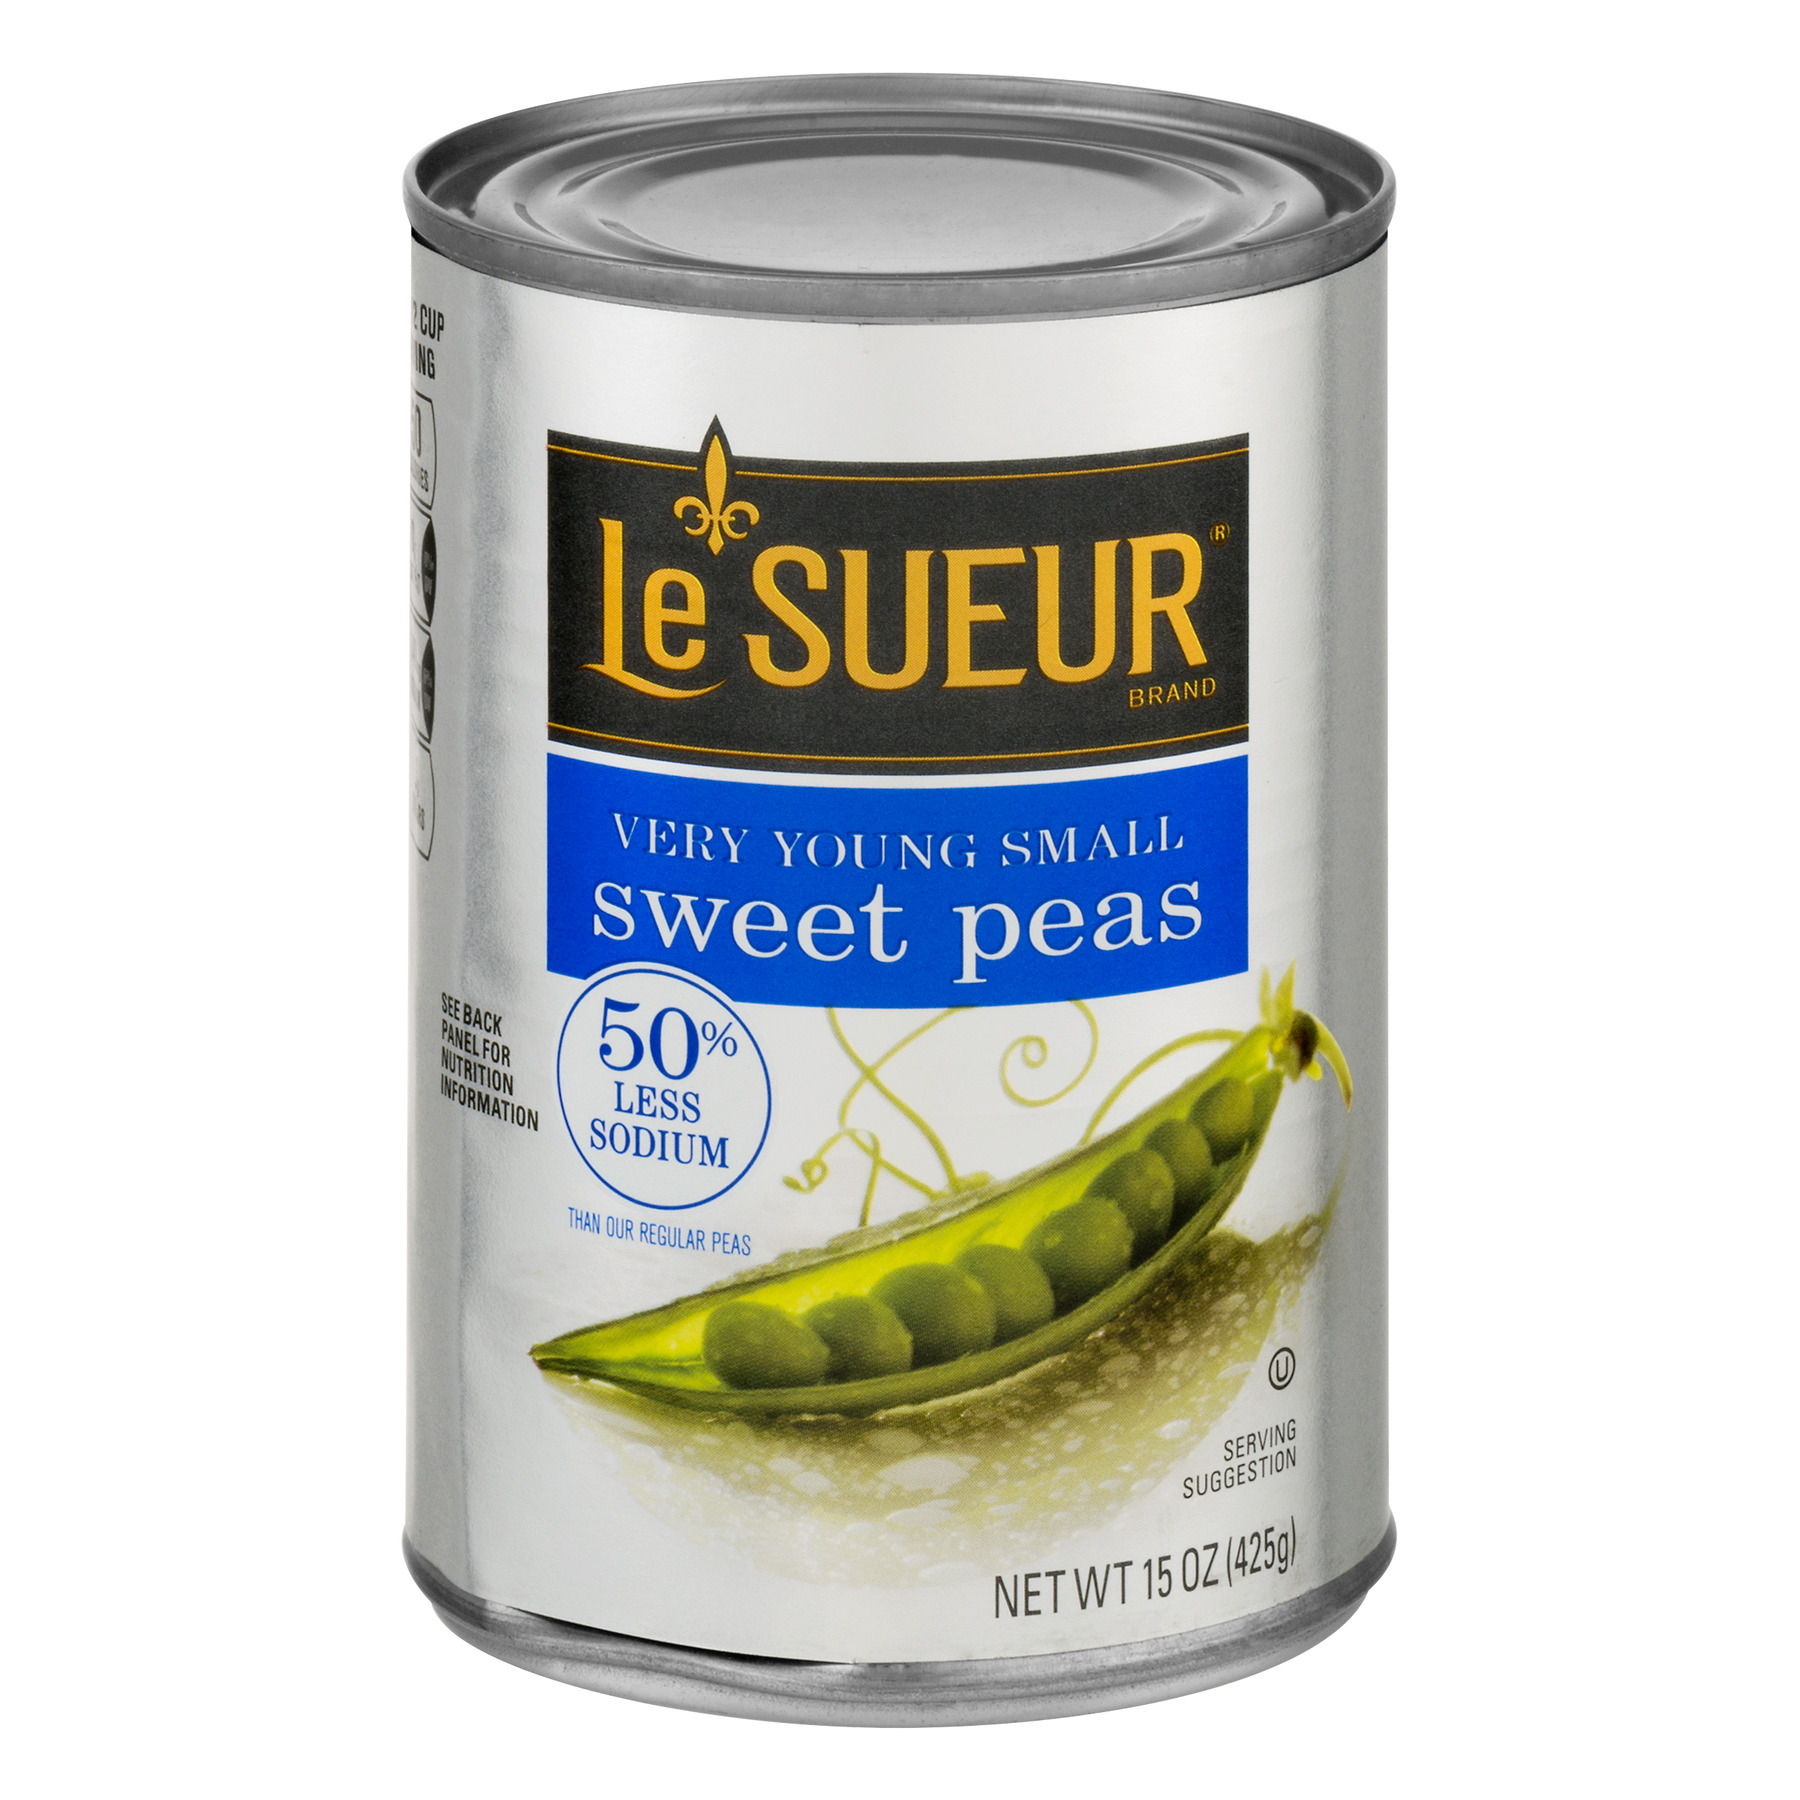 Le Sueur Sweet Peas, 50% Less Sodium, 15 Oz